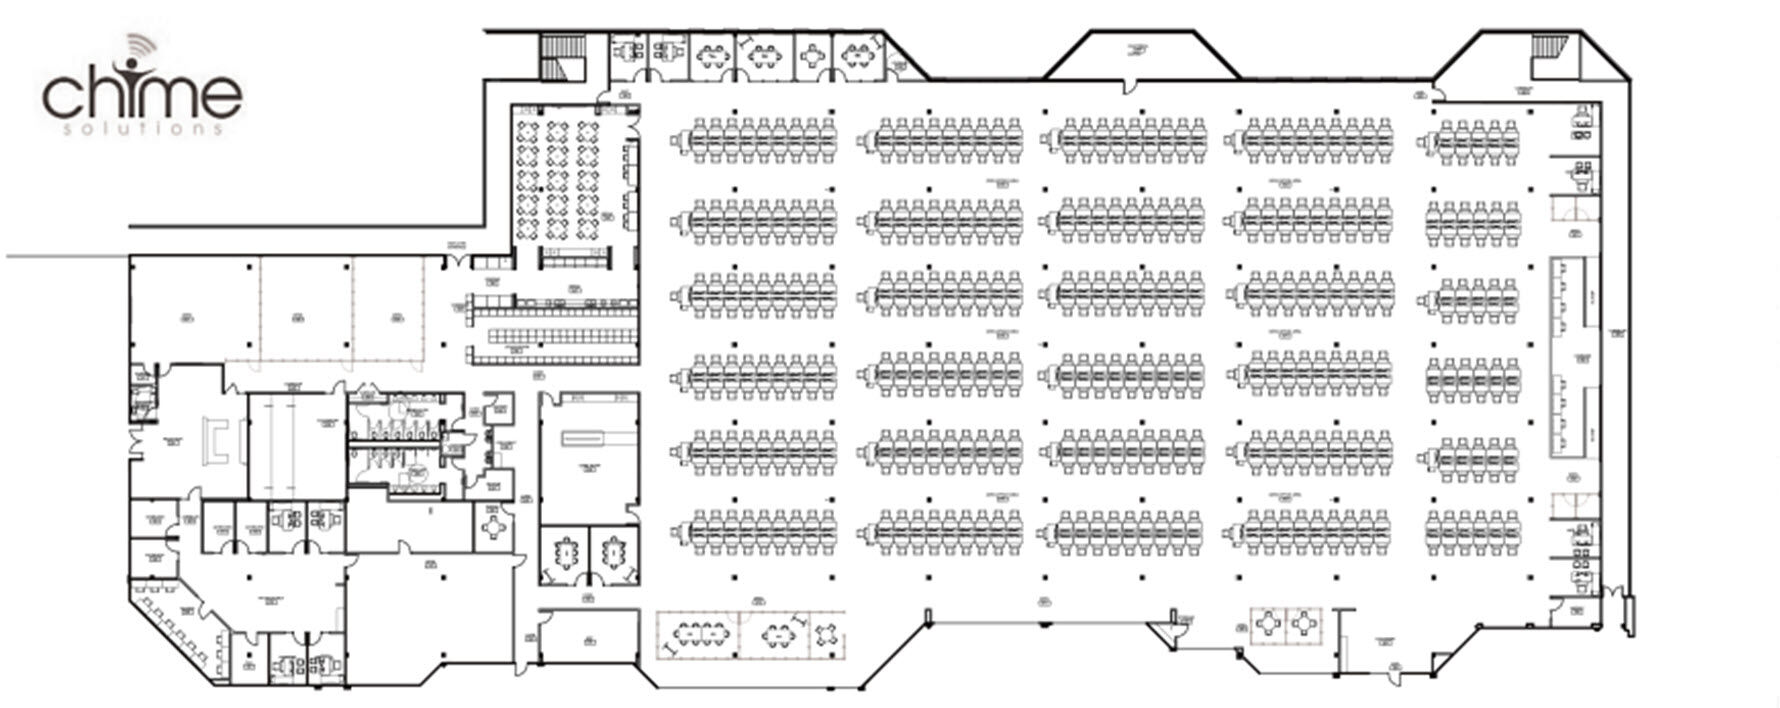 floor plan for chime solutions space  image